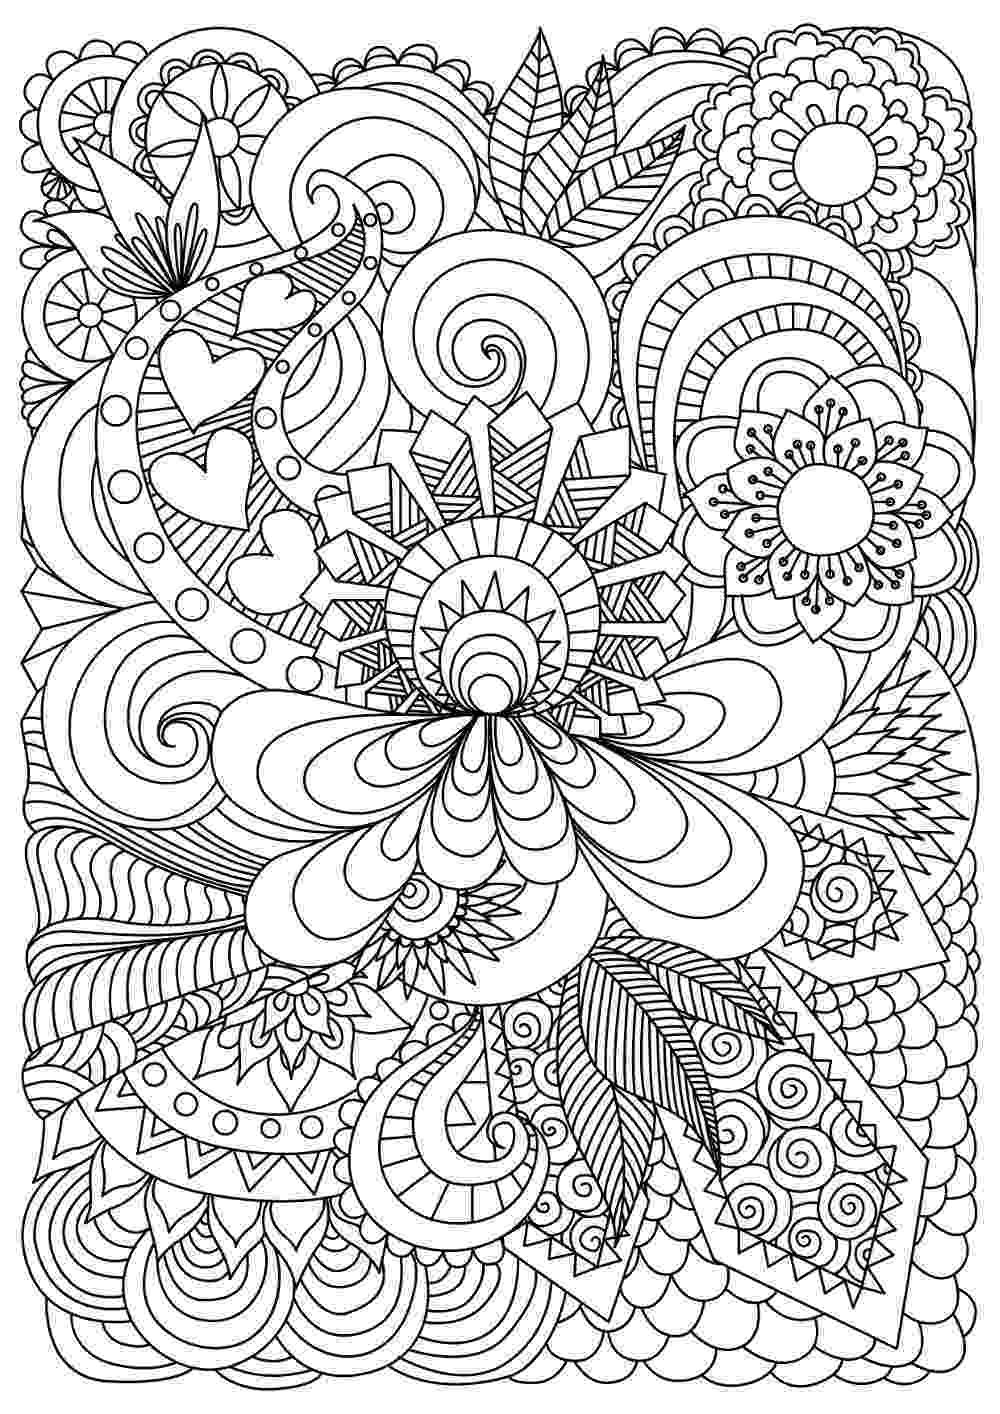 coloring book for adults online coloring pages for adults best coloring pages for kids book coloring for adults online